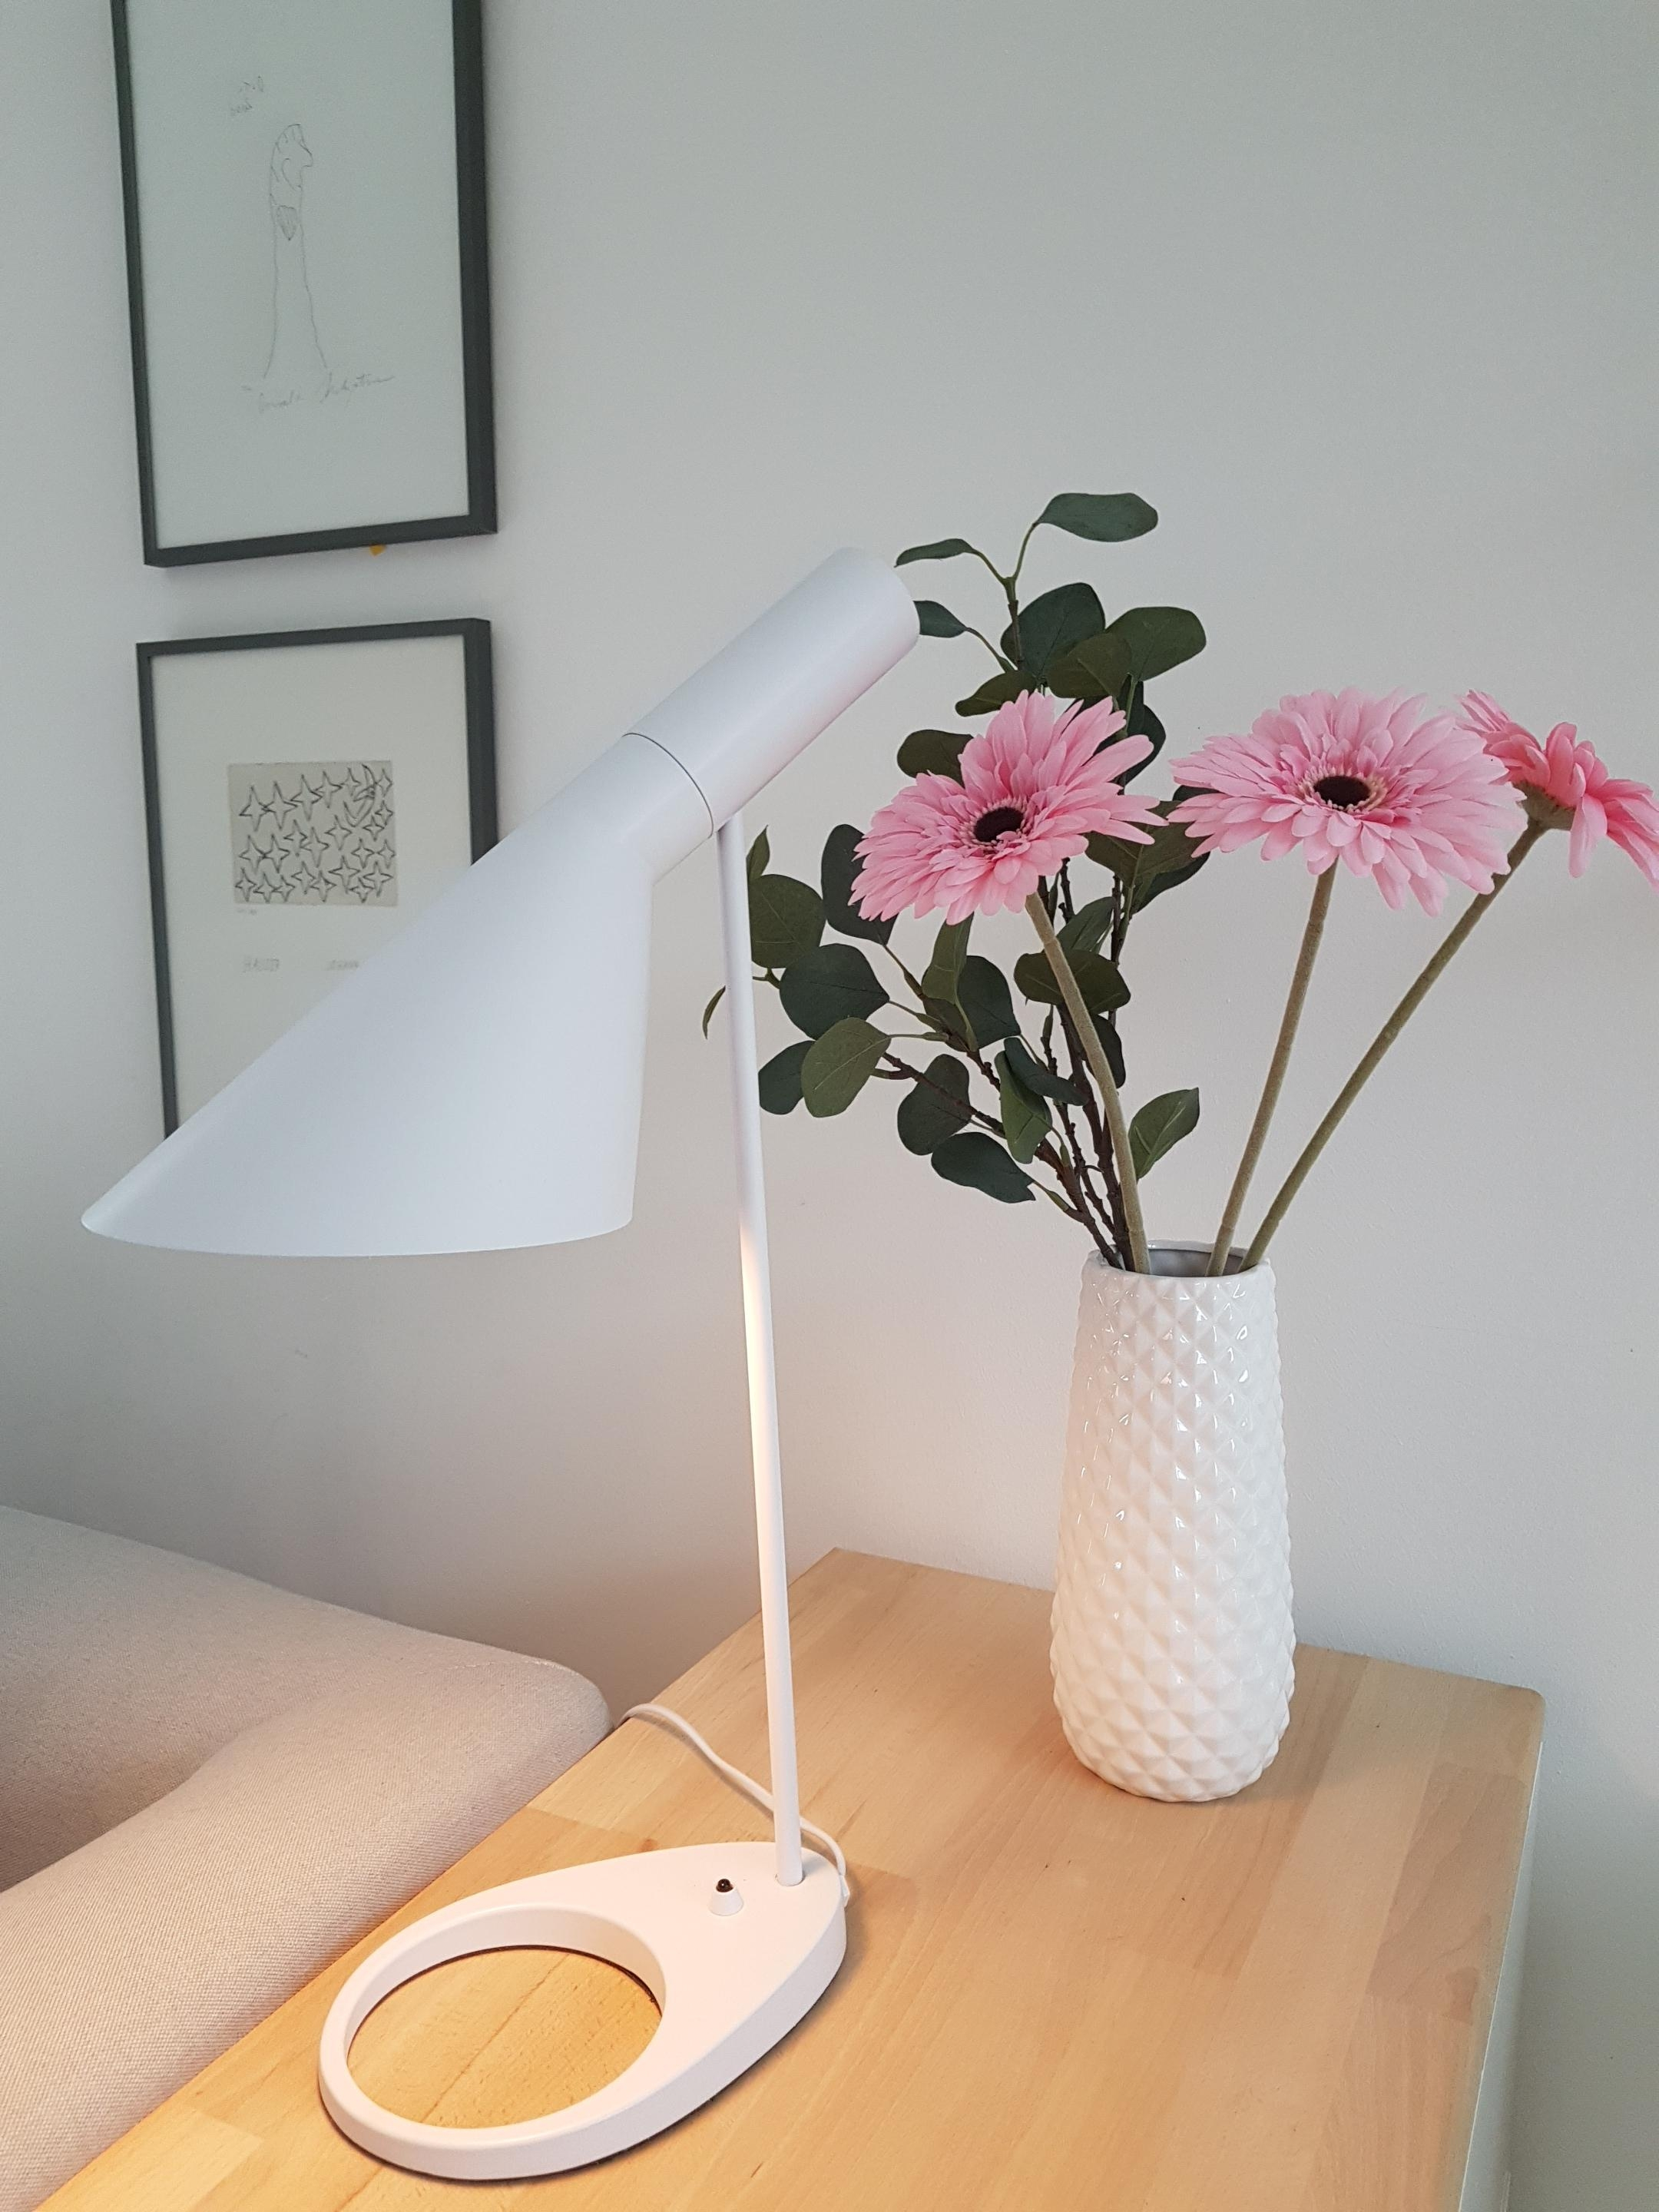 AJ Lampe #ajlamp #scandi #scandinavian #design #whiteliving #interiordesign